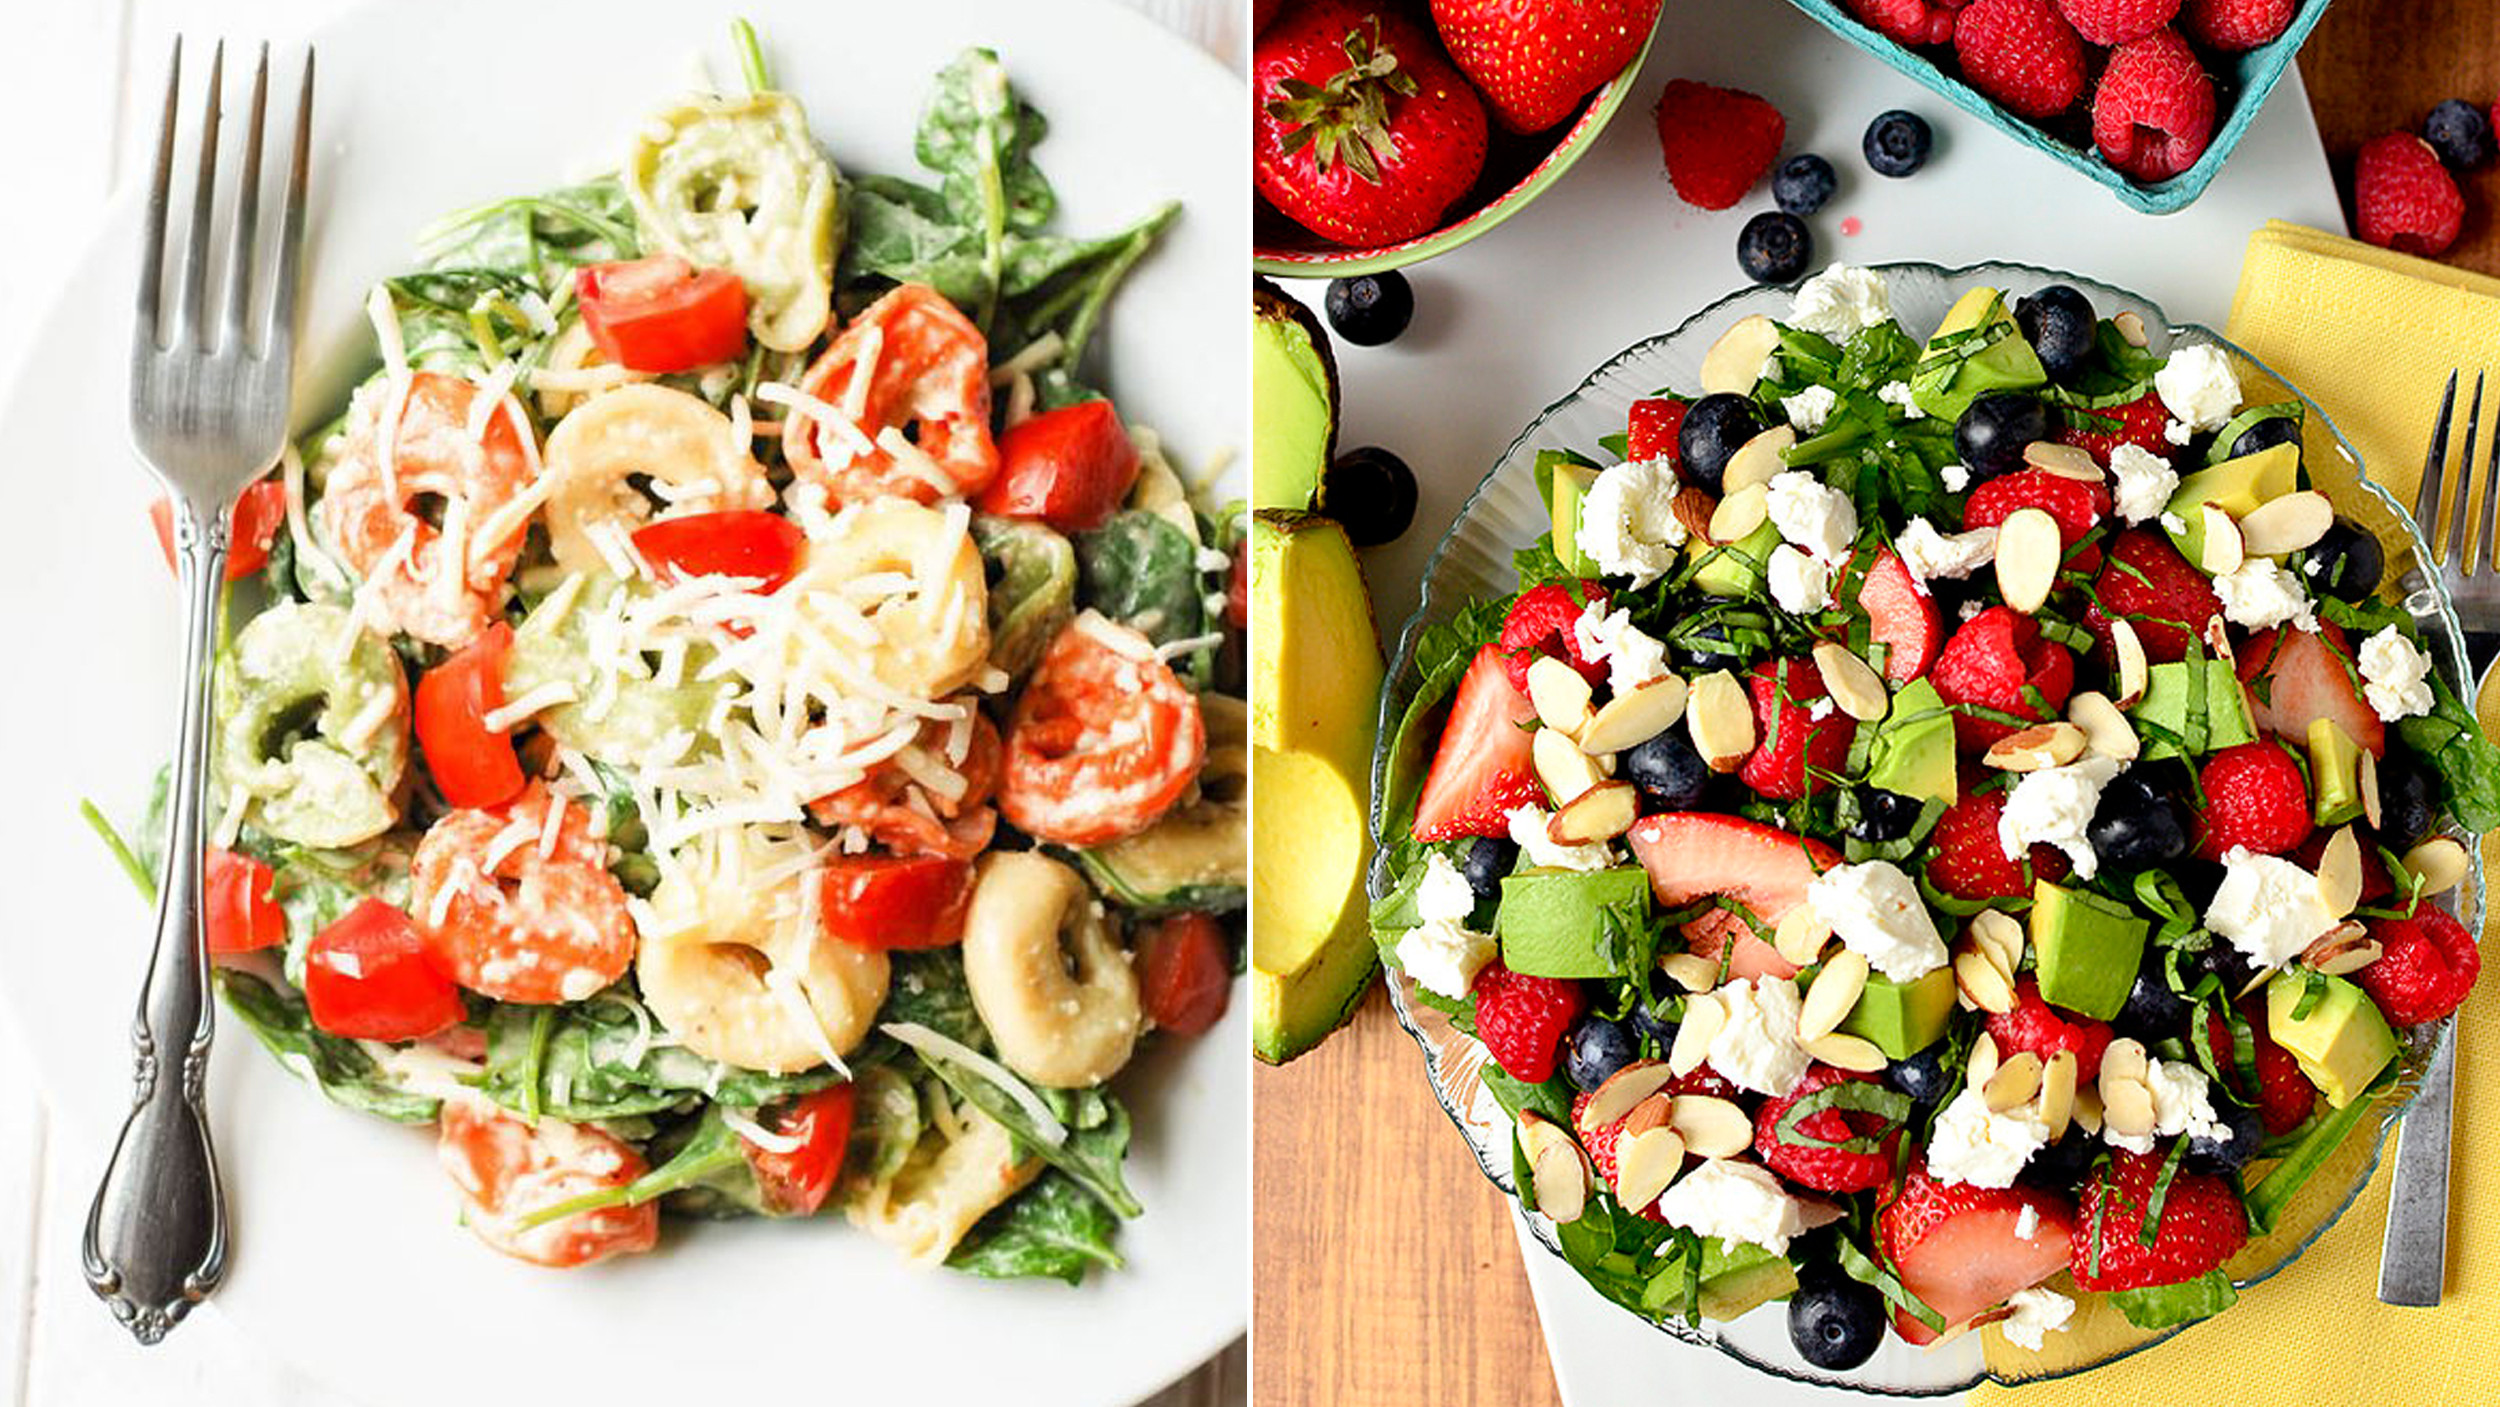 Healthy Snacks Pinterest  7 Pinterest approved healthy summer salad recipes TODAY